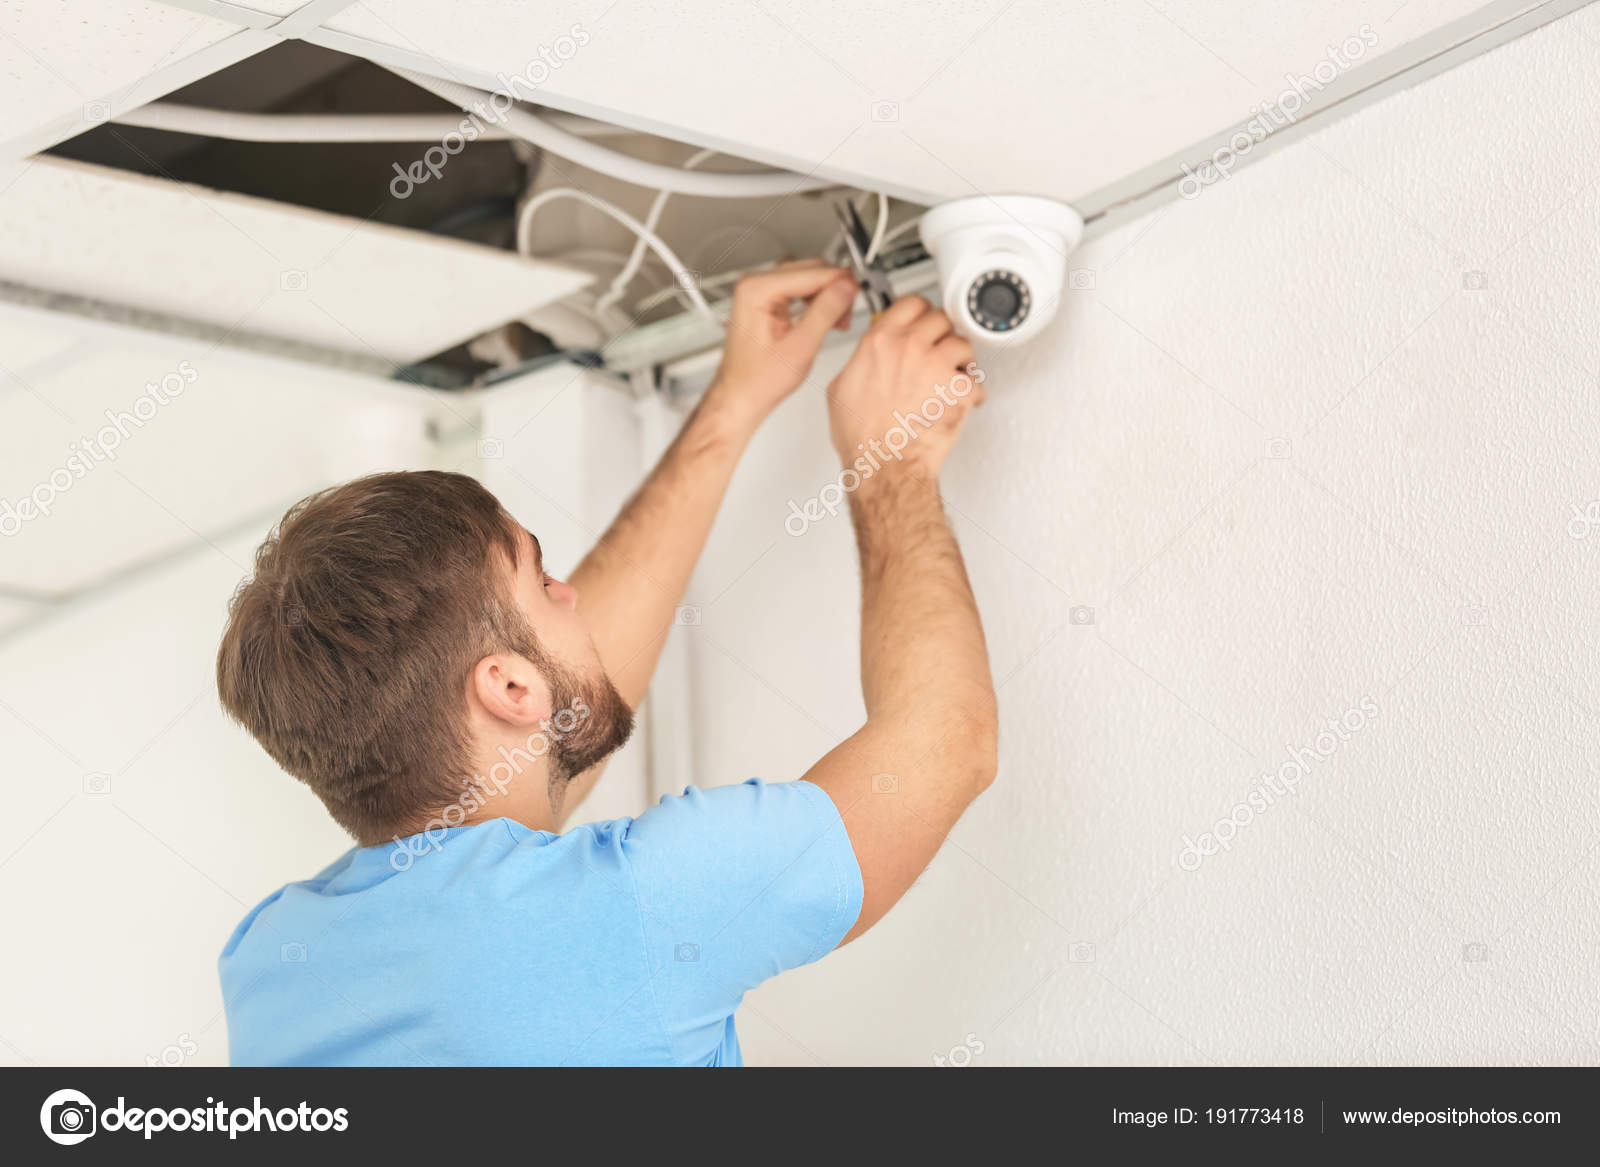 Electrician Installing Security Camera Indoors Stock Photo Wiring A House Homework